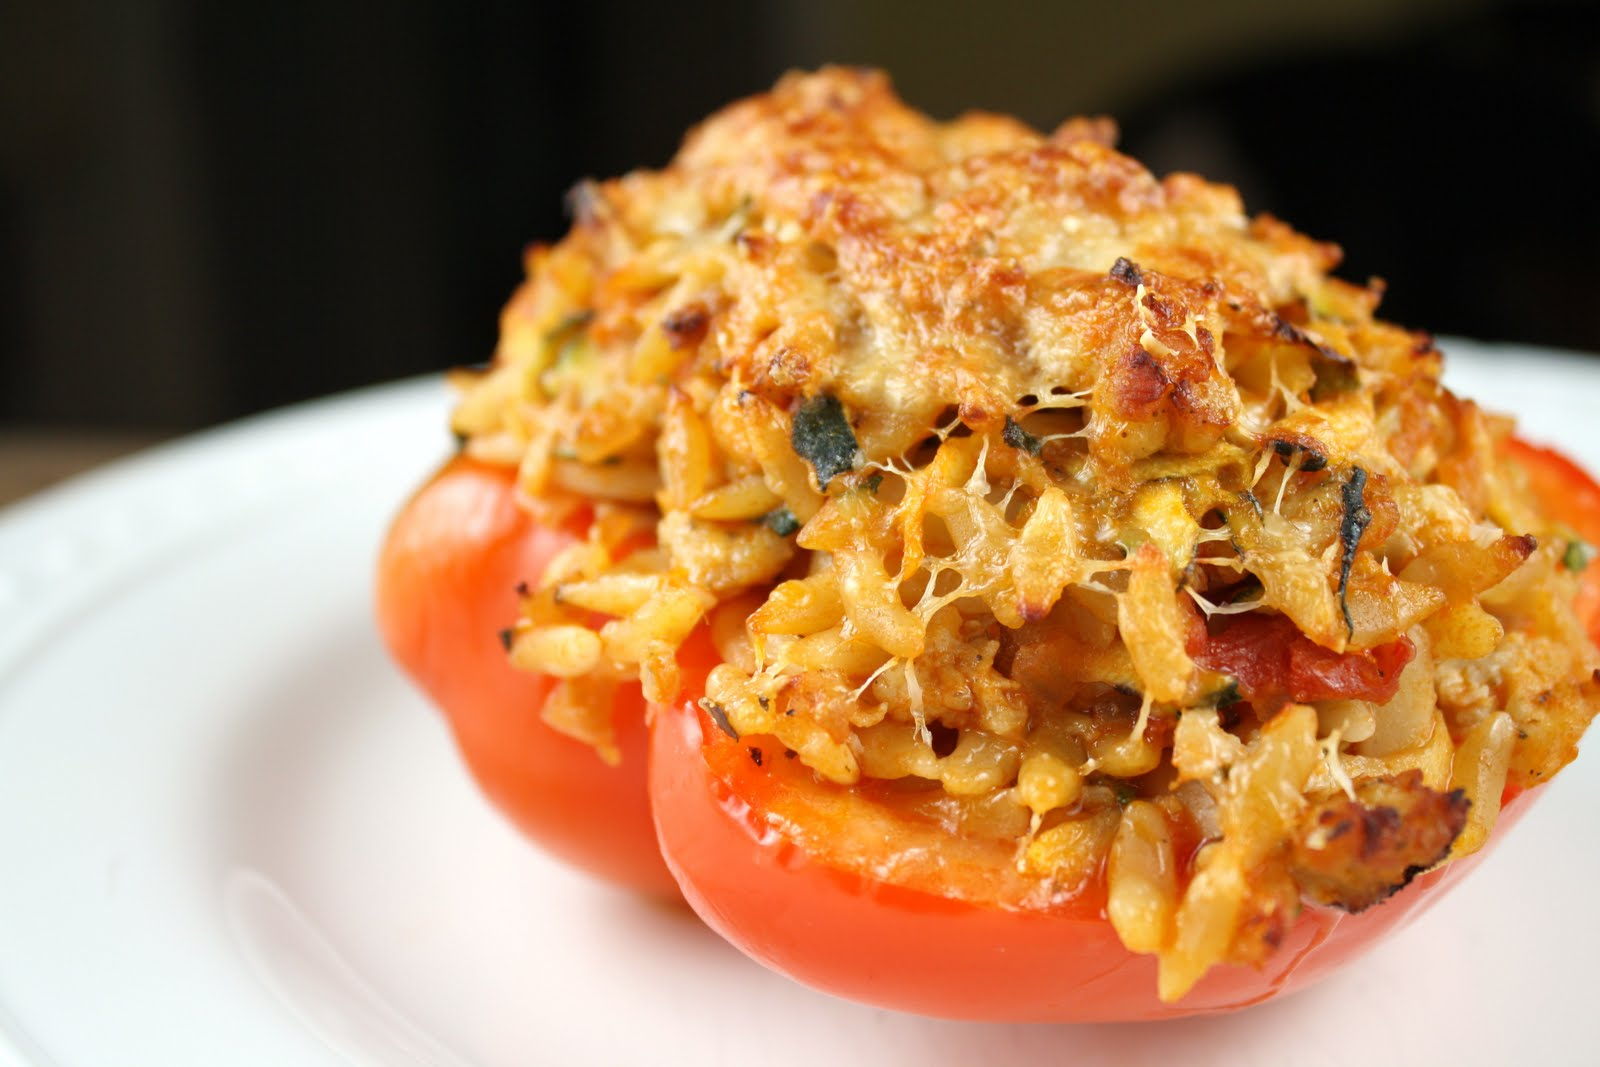 Living on Pure Land: Zucchini, sausage, and orzo stuffed peppers